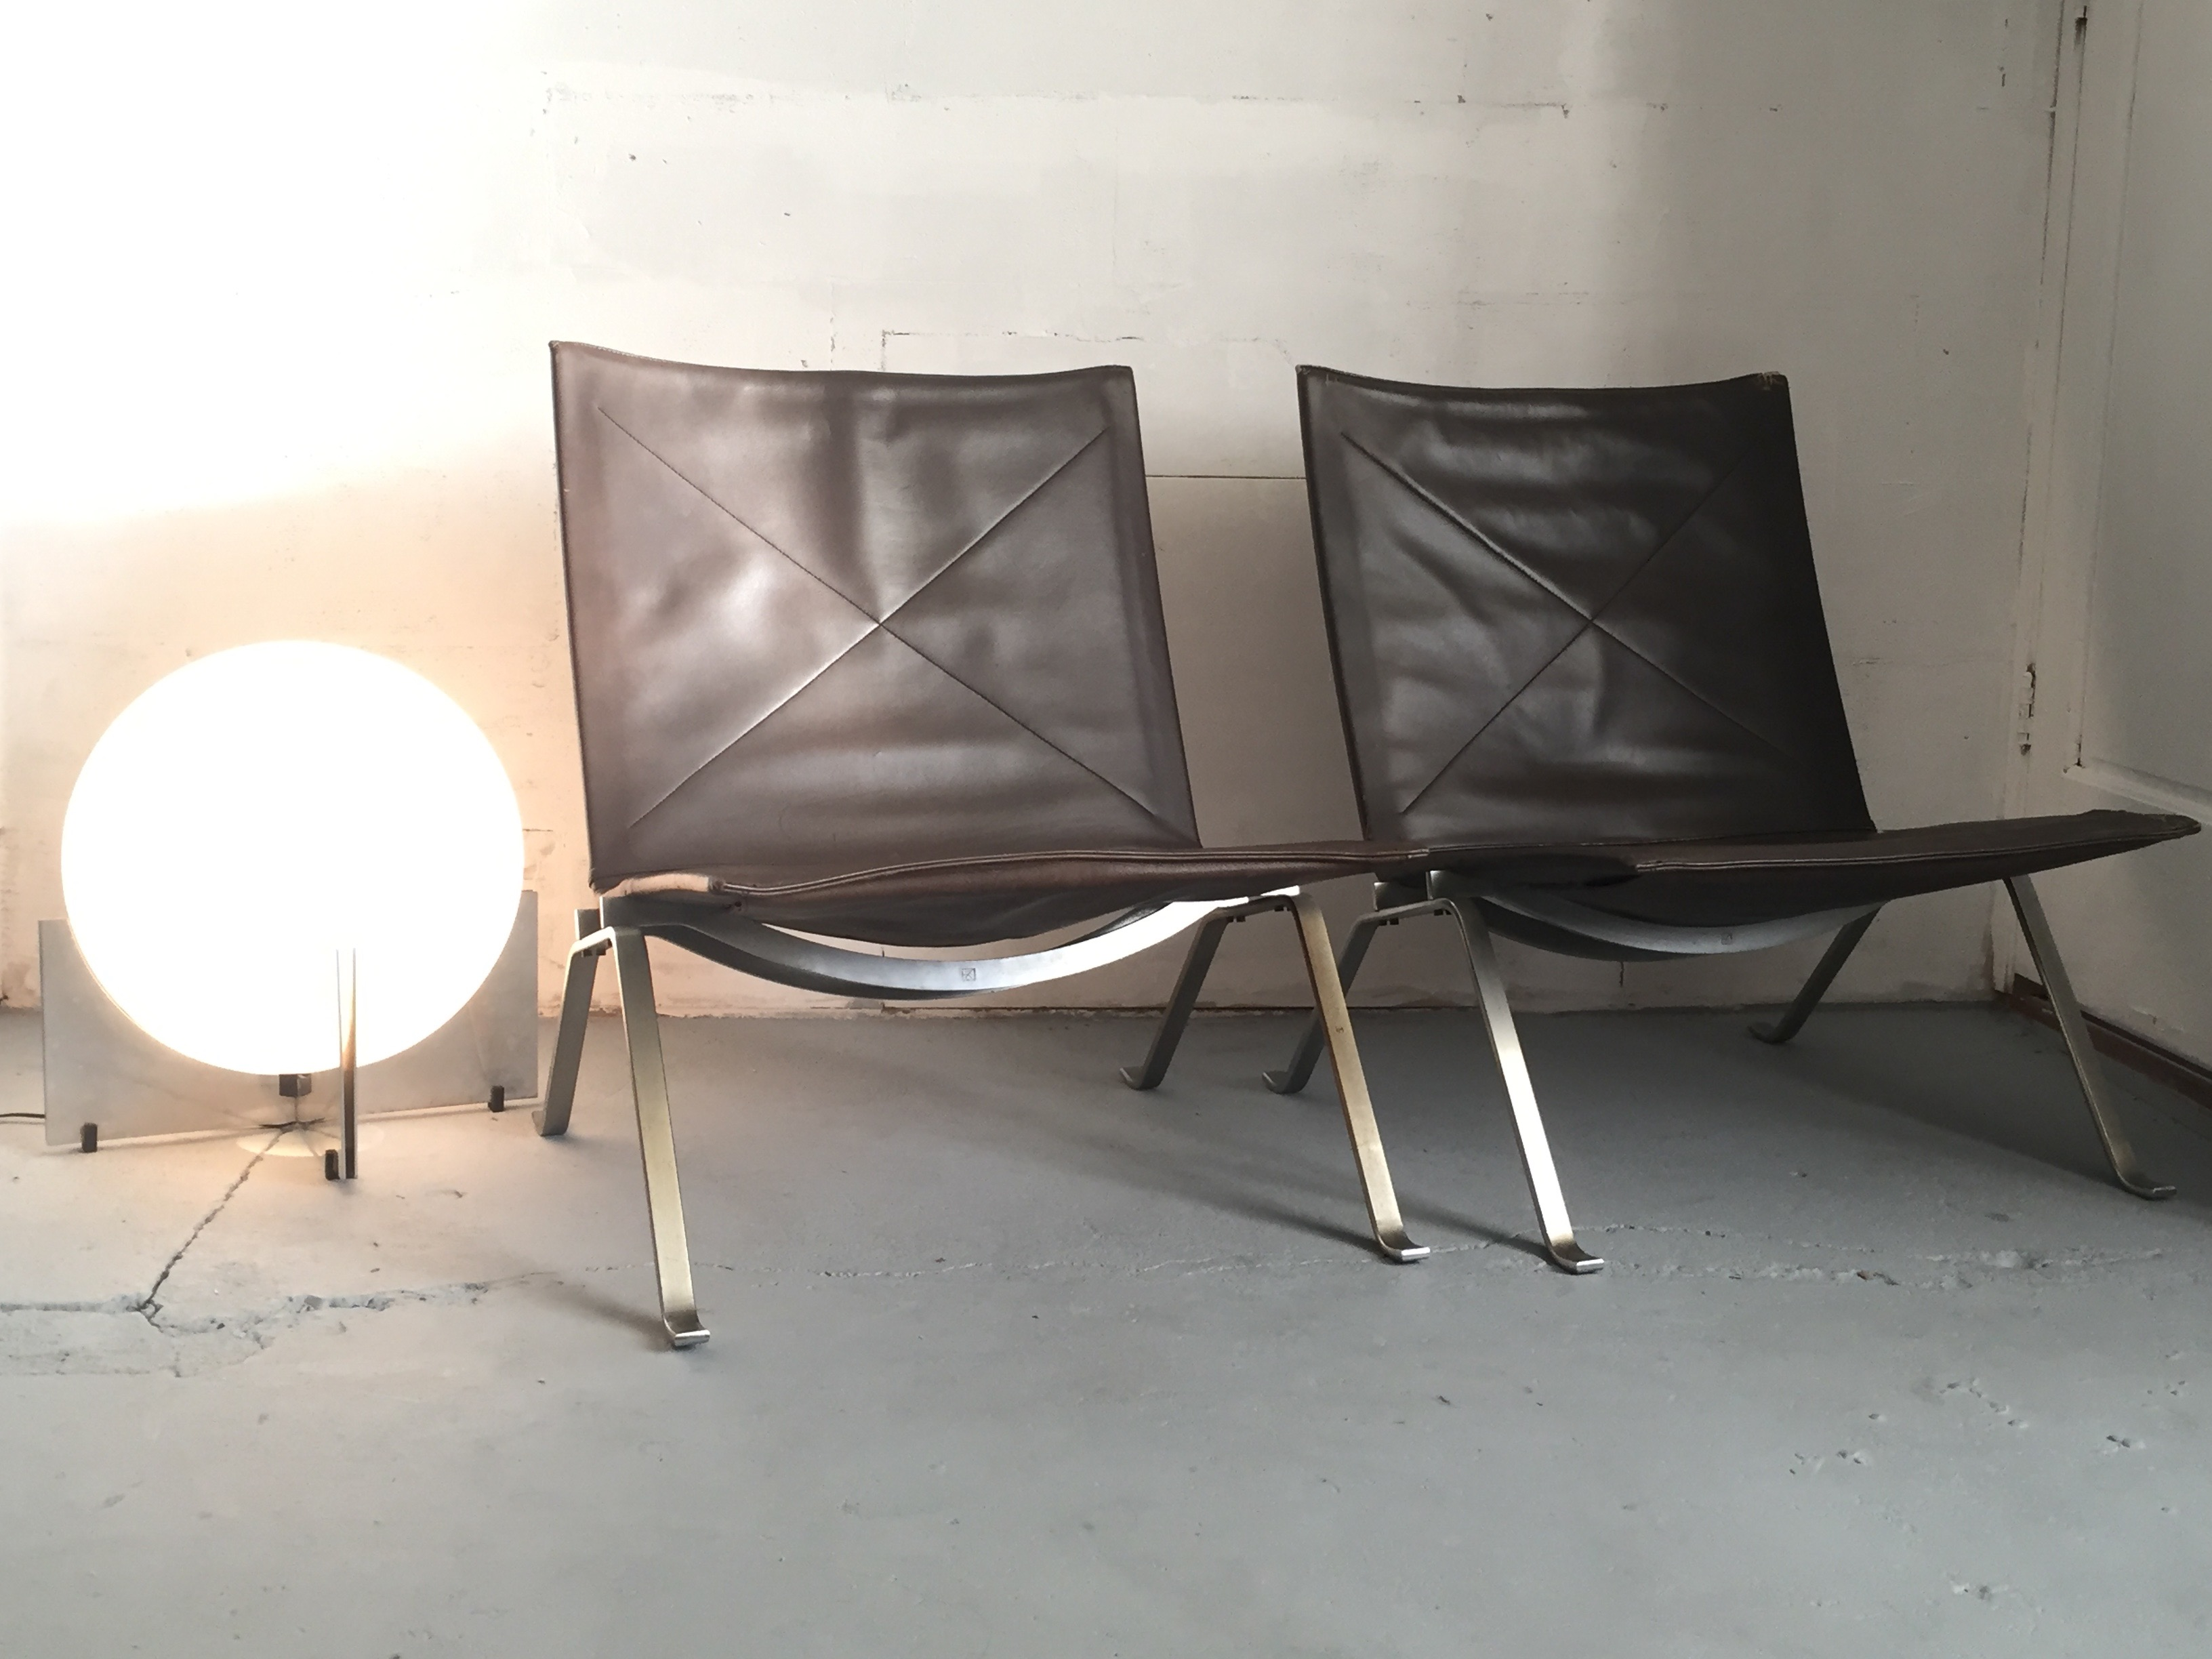 Kold Christensen PK22 Chairs by Poul Kjaerholm and a very rare Tronconi Bull Lamp